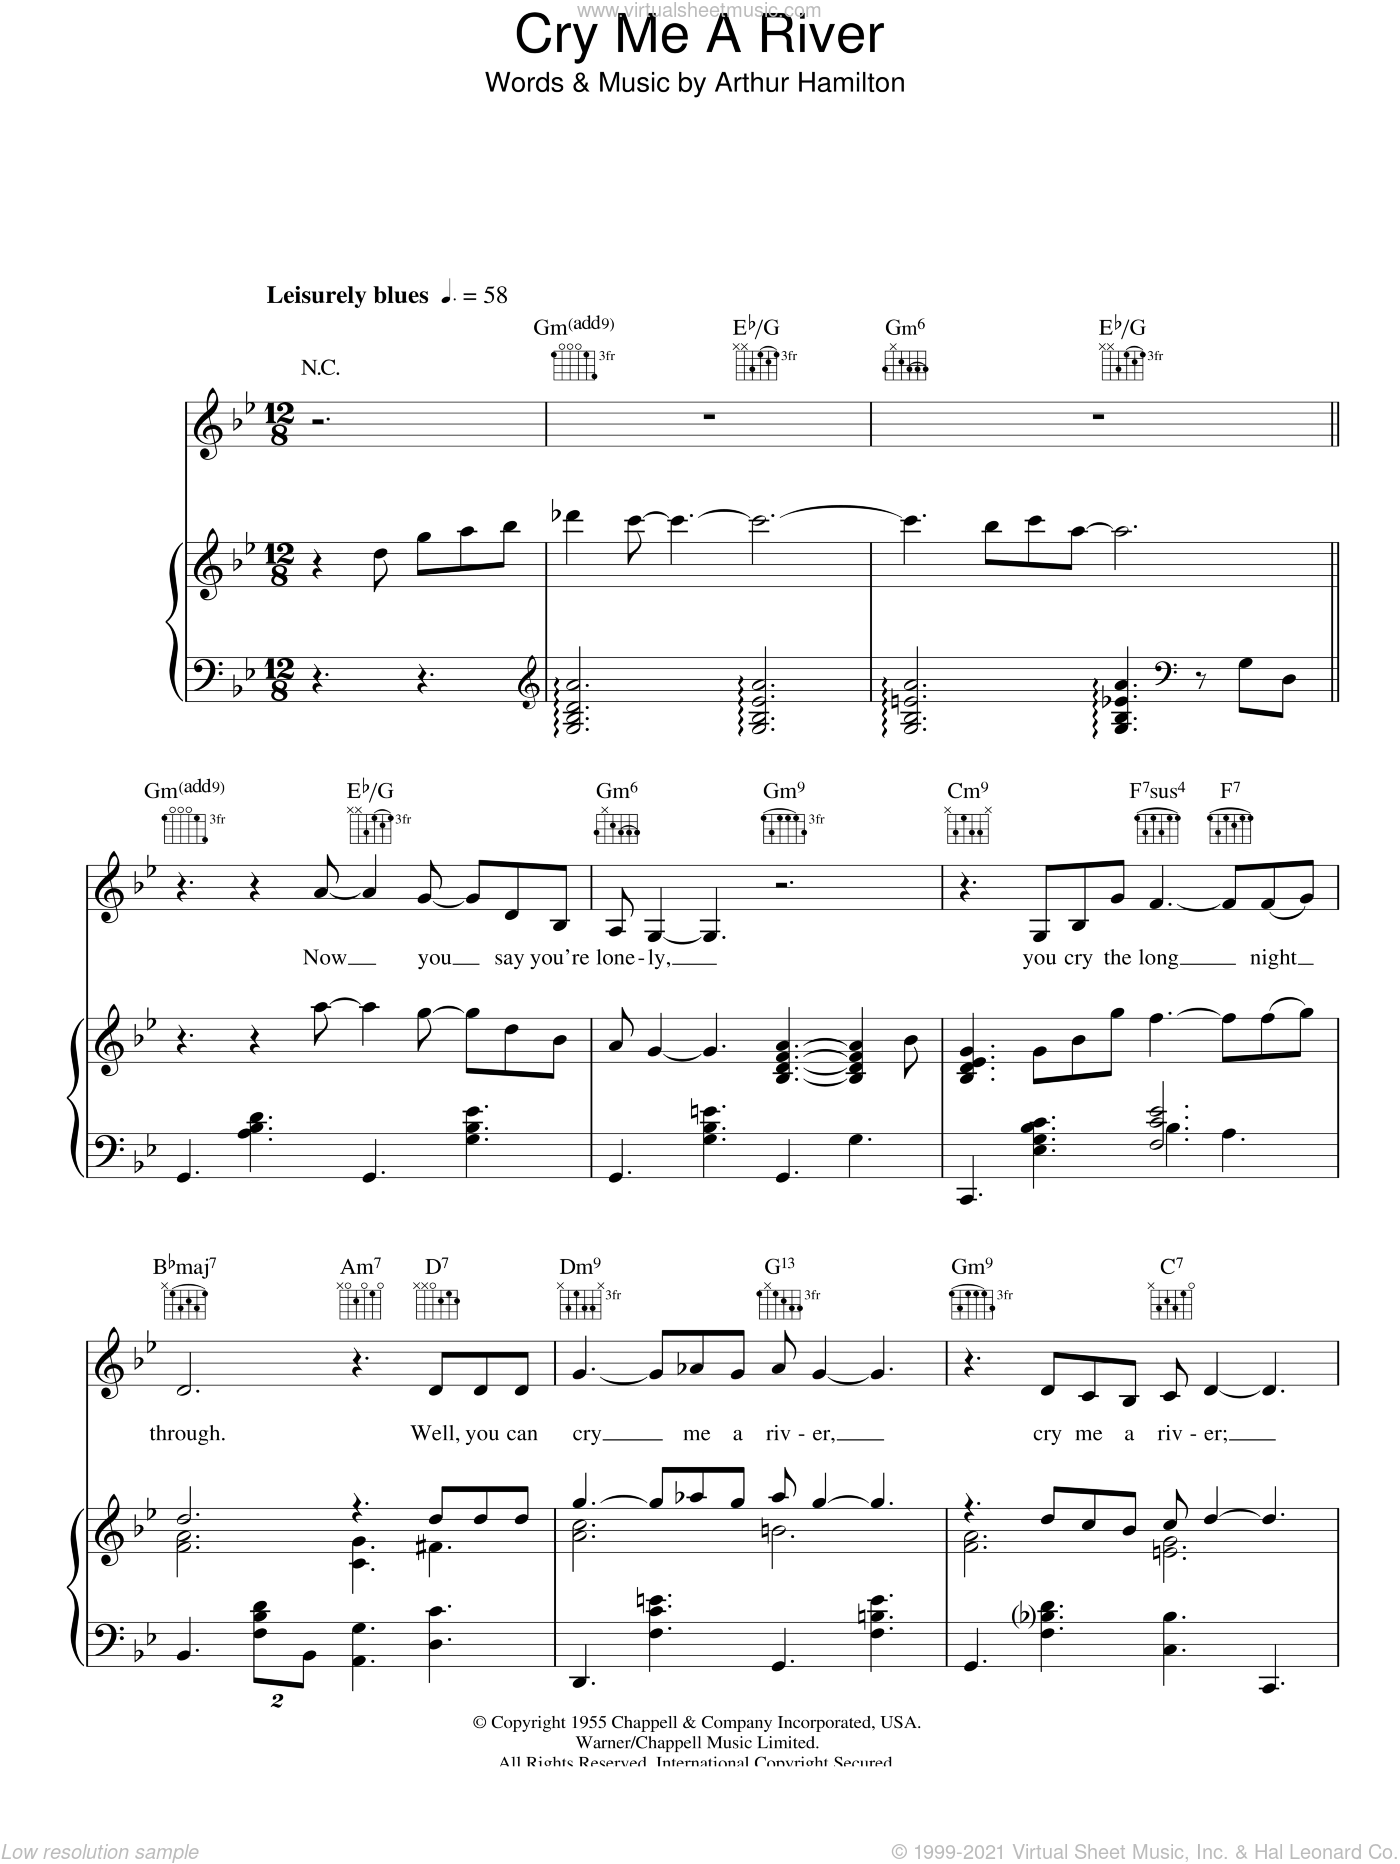 Cry Me A River sheet music for voice, piano or guitar by Susan Boyle, Ella Fitzgerald, Julie London and Arthur Hamilton, intermediate voice, piano or guitar. Score Image Preview.